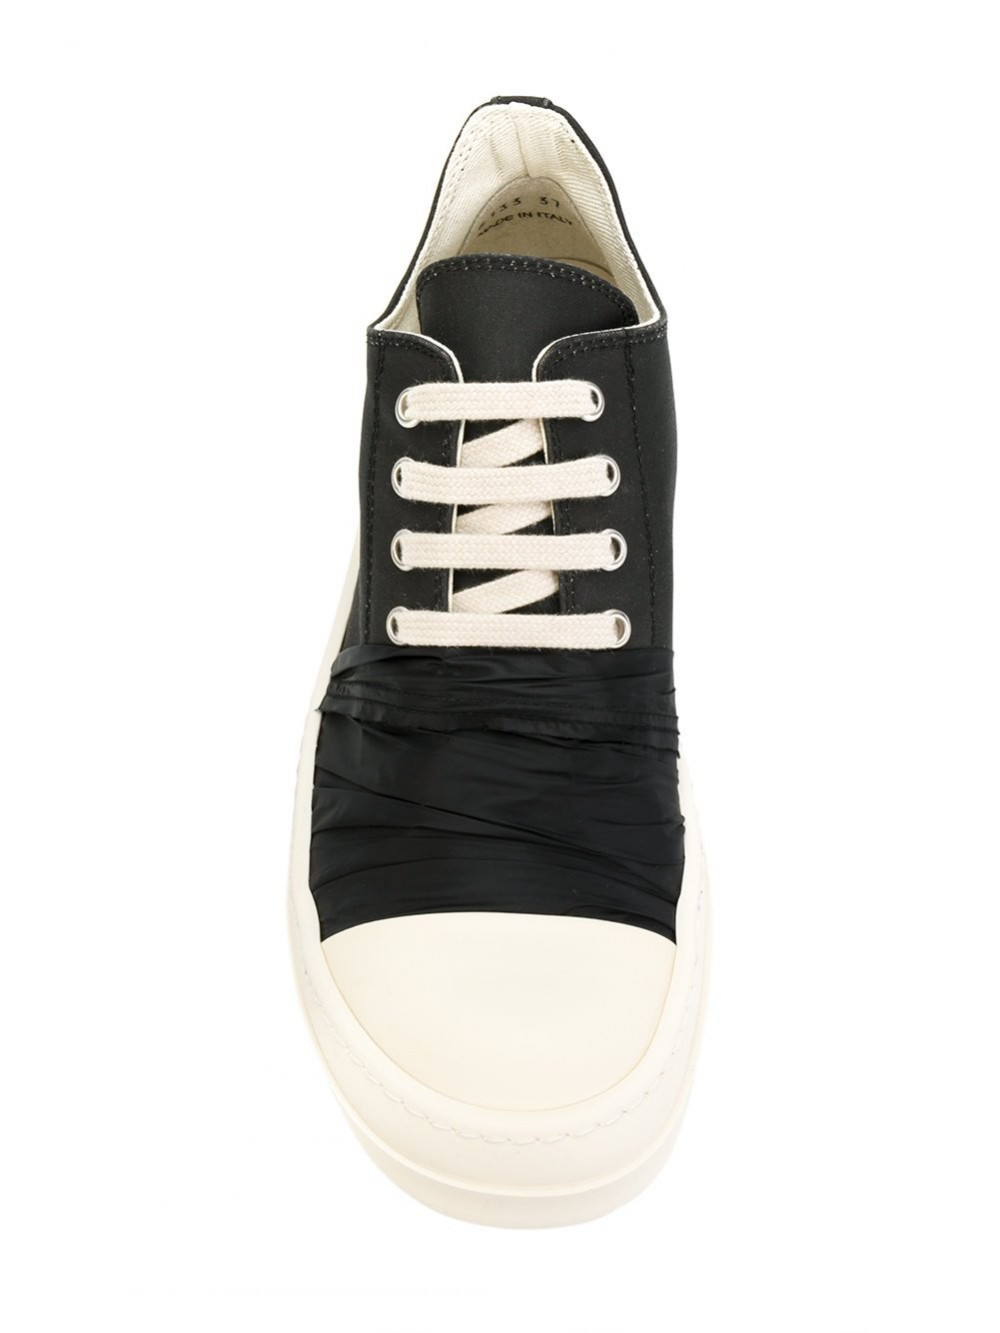 DRKSHDW Black High-top Sneakers | DS17F2802 RYEVP 991